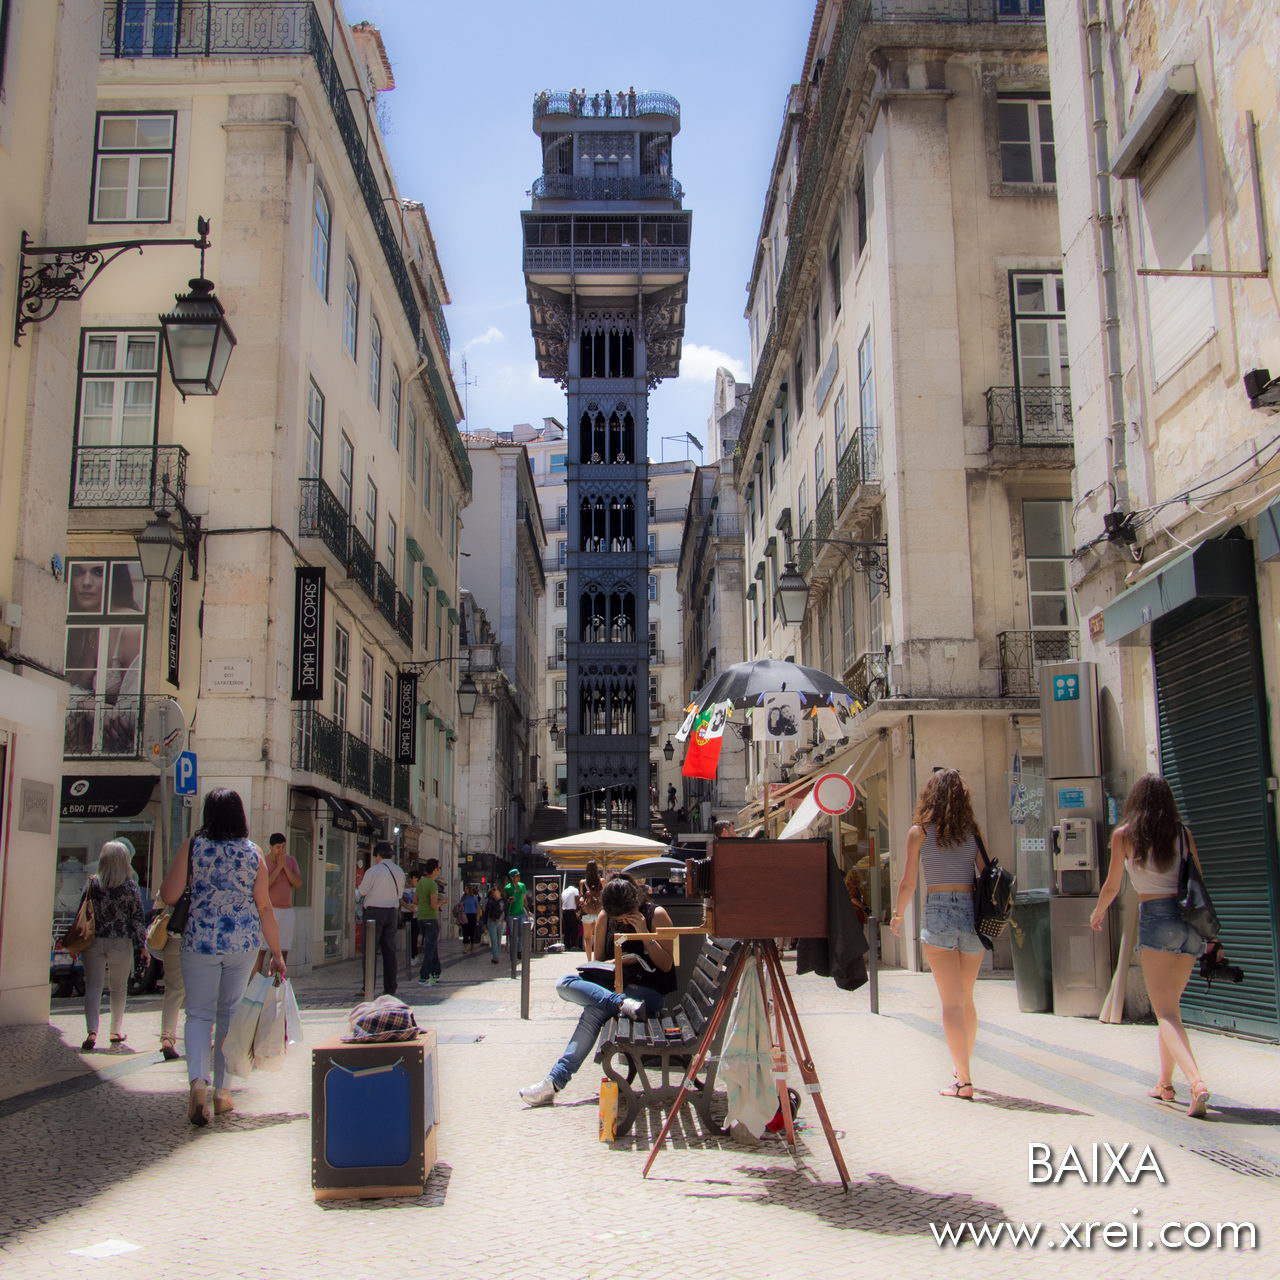 Elevador de Santa Justa is a vertical elevator with a cast iron architecture, and a plaque at the top that allows us to enjoy a panoramic view over downtown Lisbon